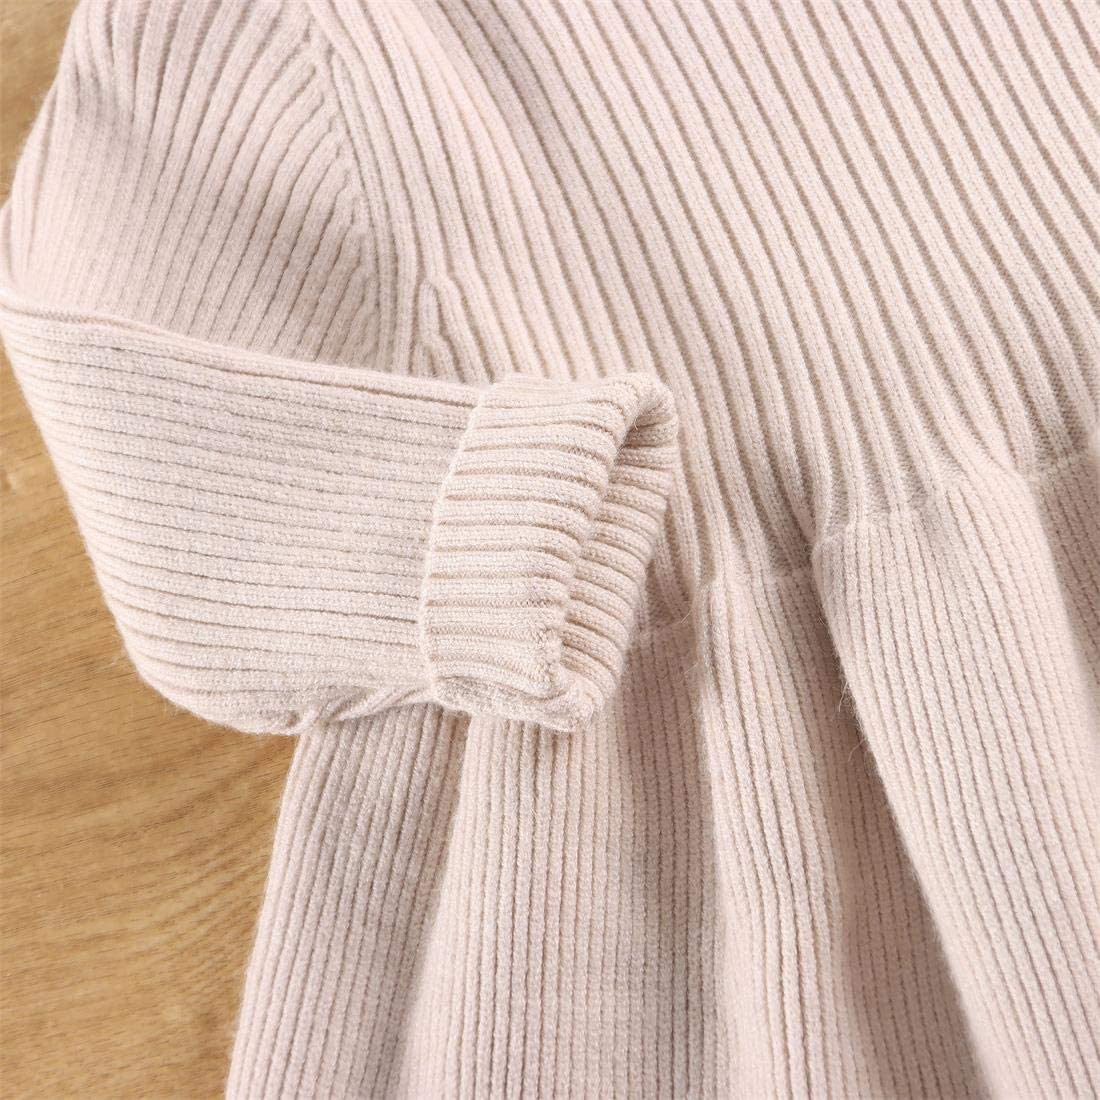 Infant Toddler Baby Girls Pleated Dress Long Sleeve Cozy Casual Ribbed Knit Sweater Dress